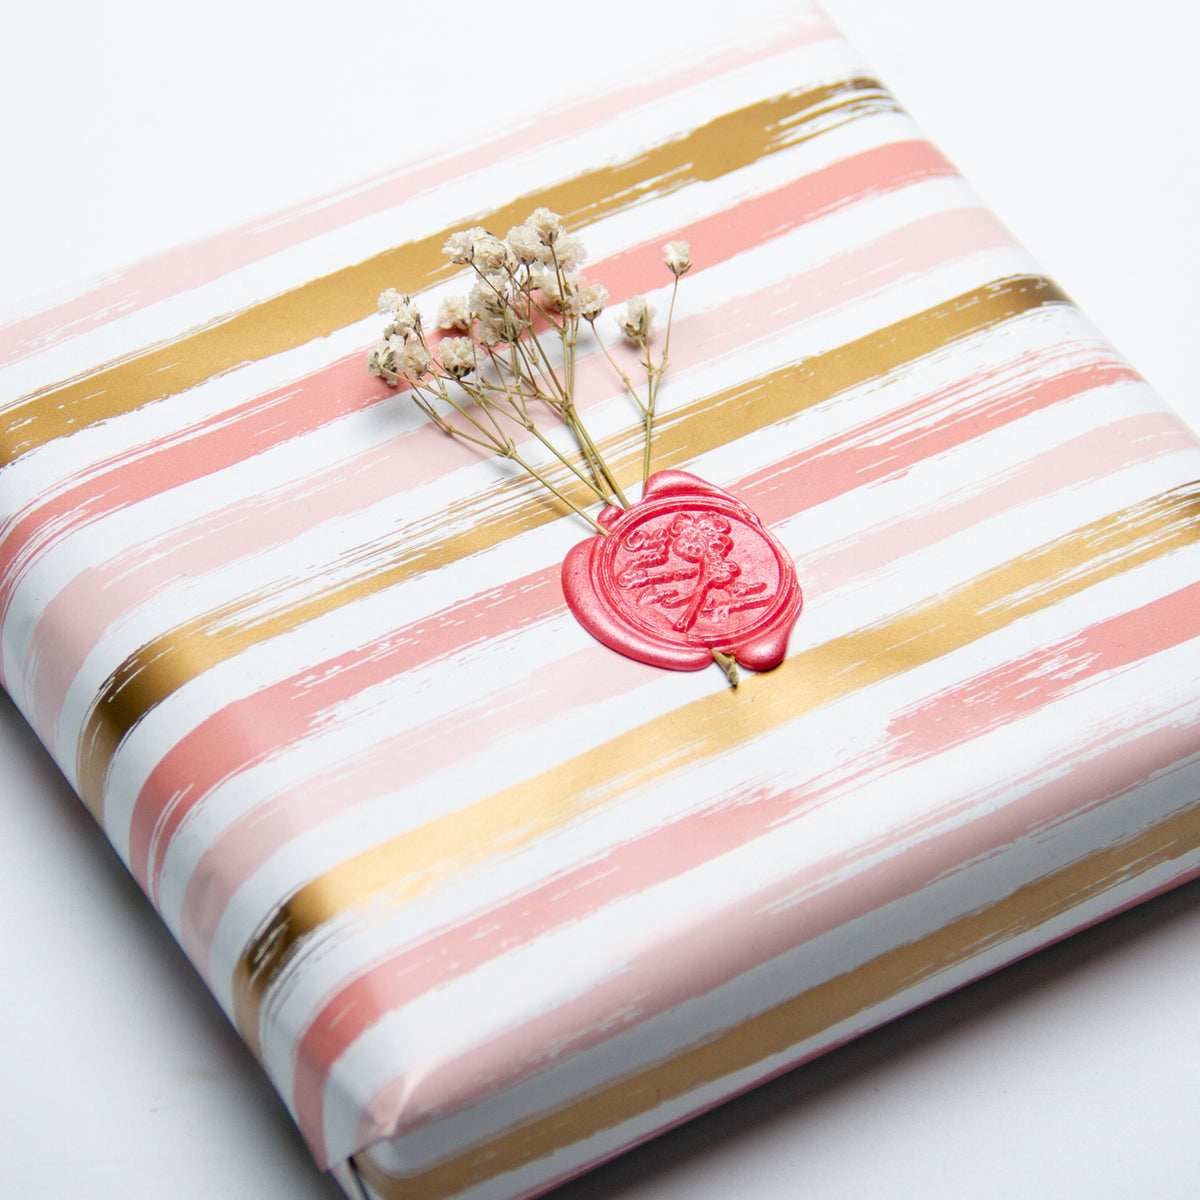 Wrapaholic-Pink-and-Gold Lines-Print-Gift-Wrapping-Paper-Roll-5